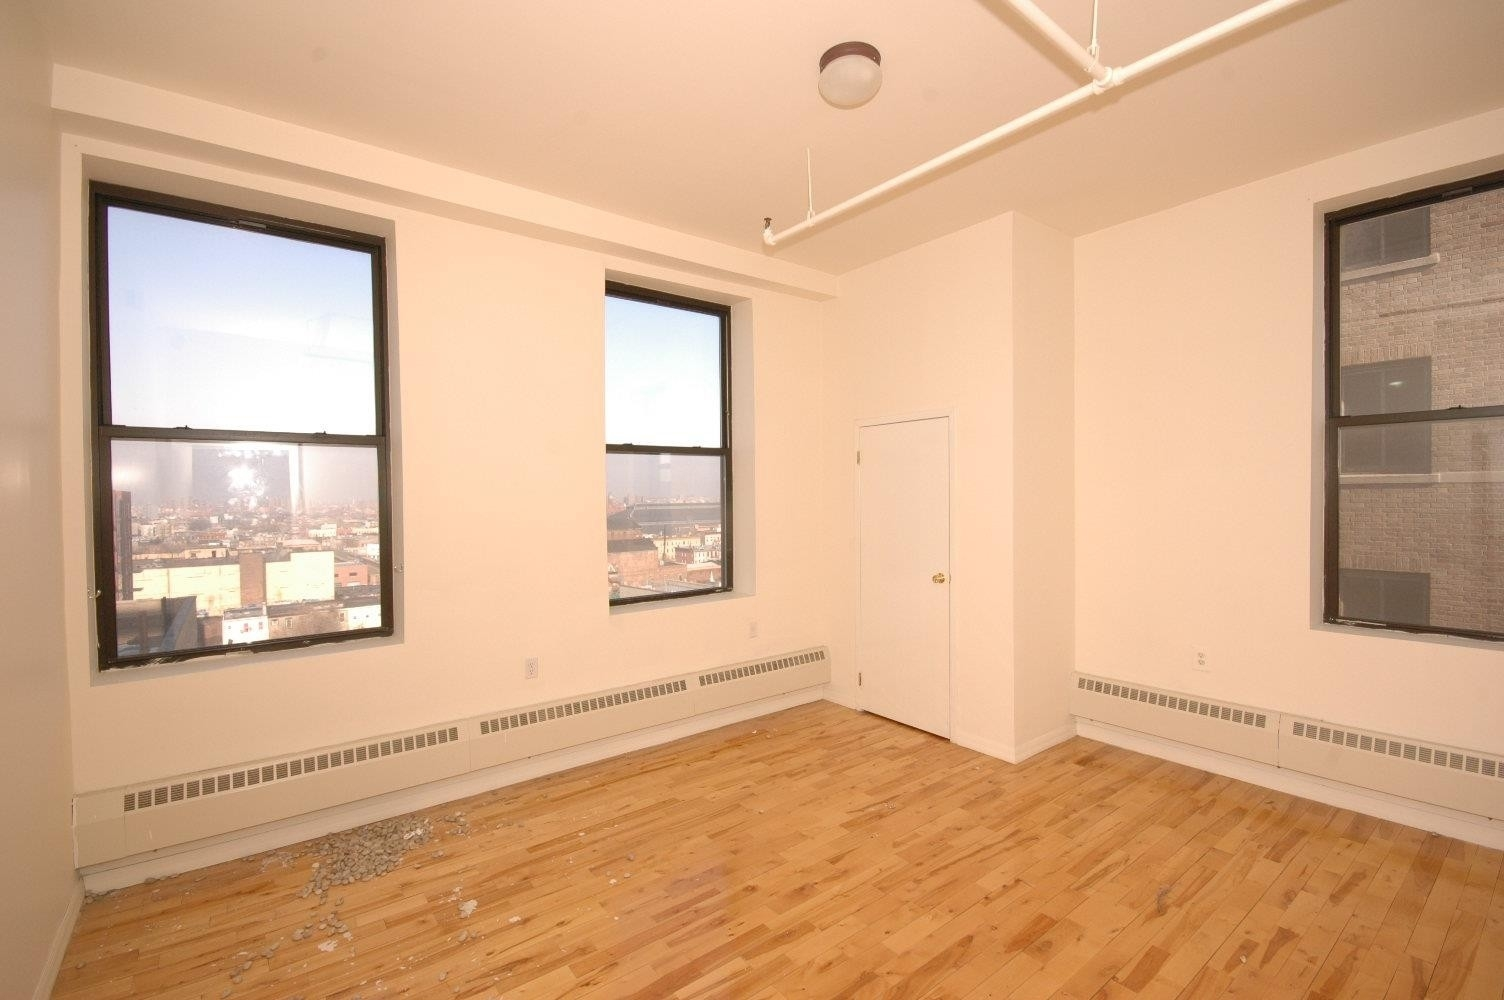 2. edificio en 545 Prospect Pl, Crown Heights, Brooklyn, NY